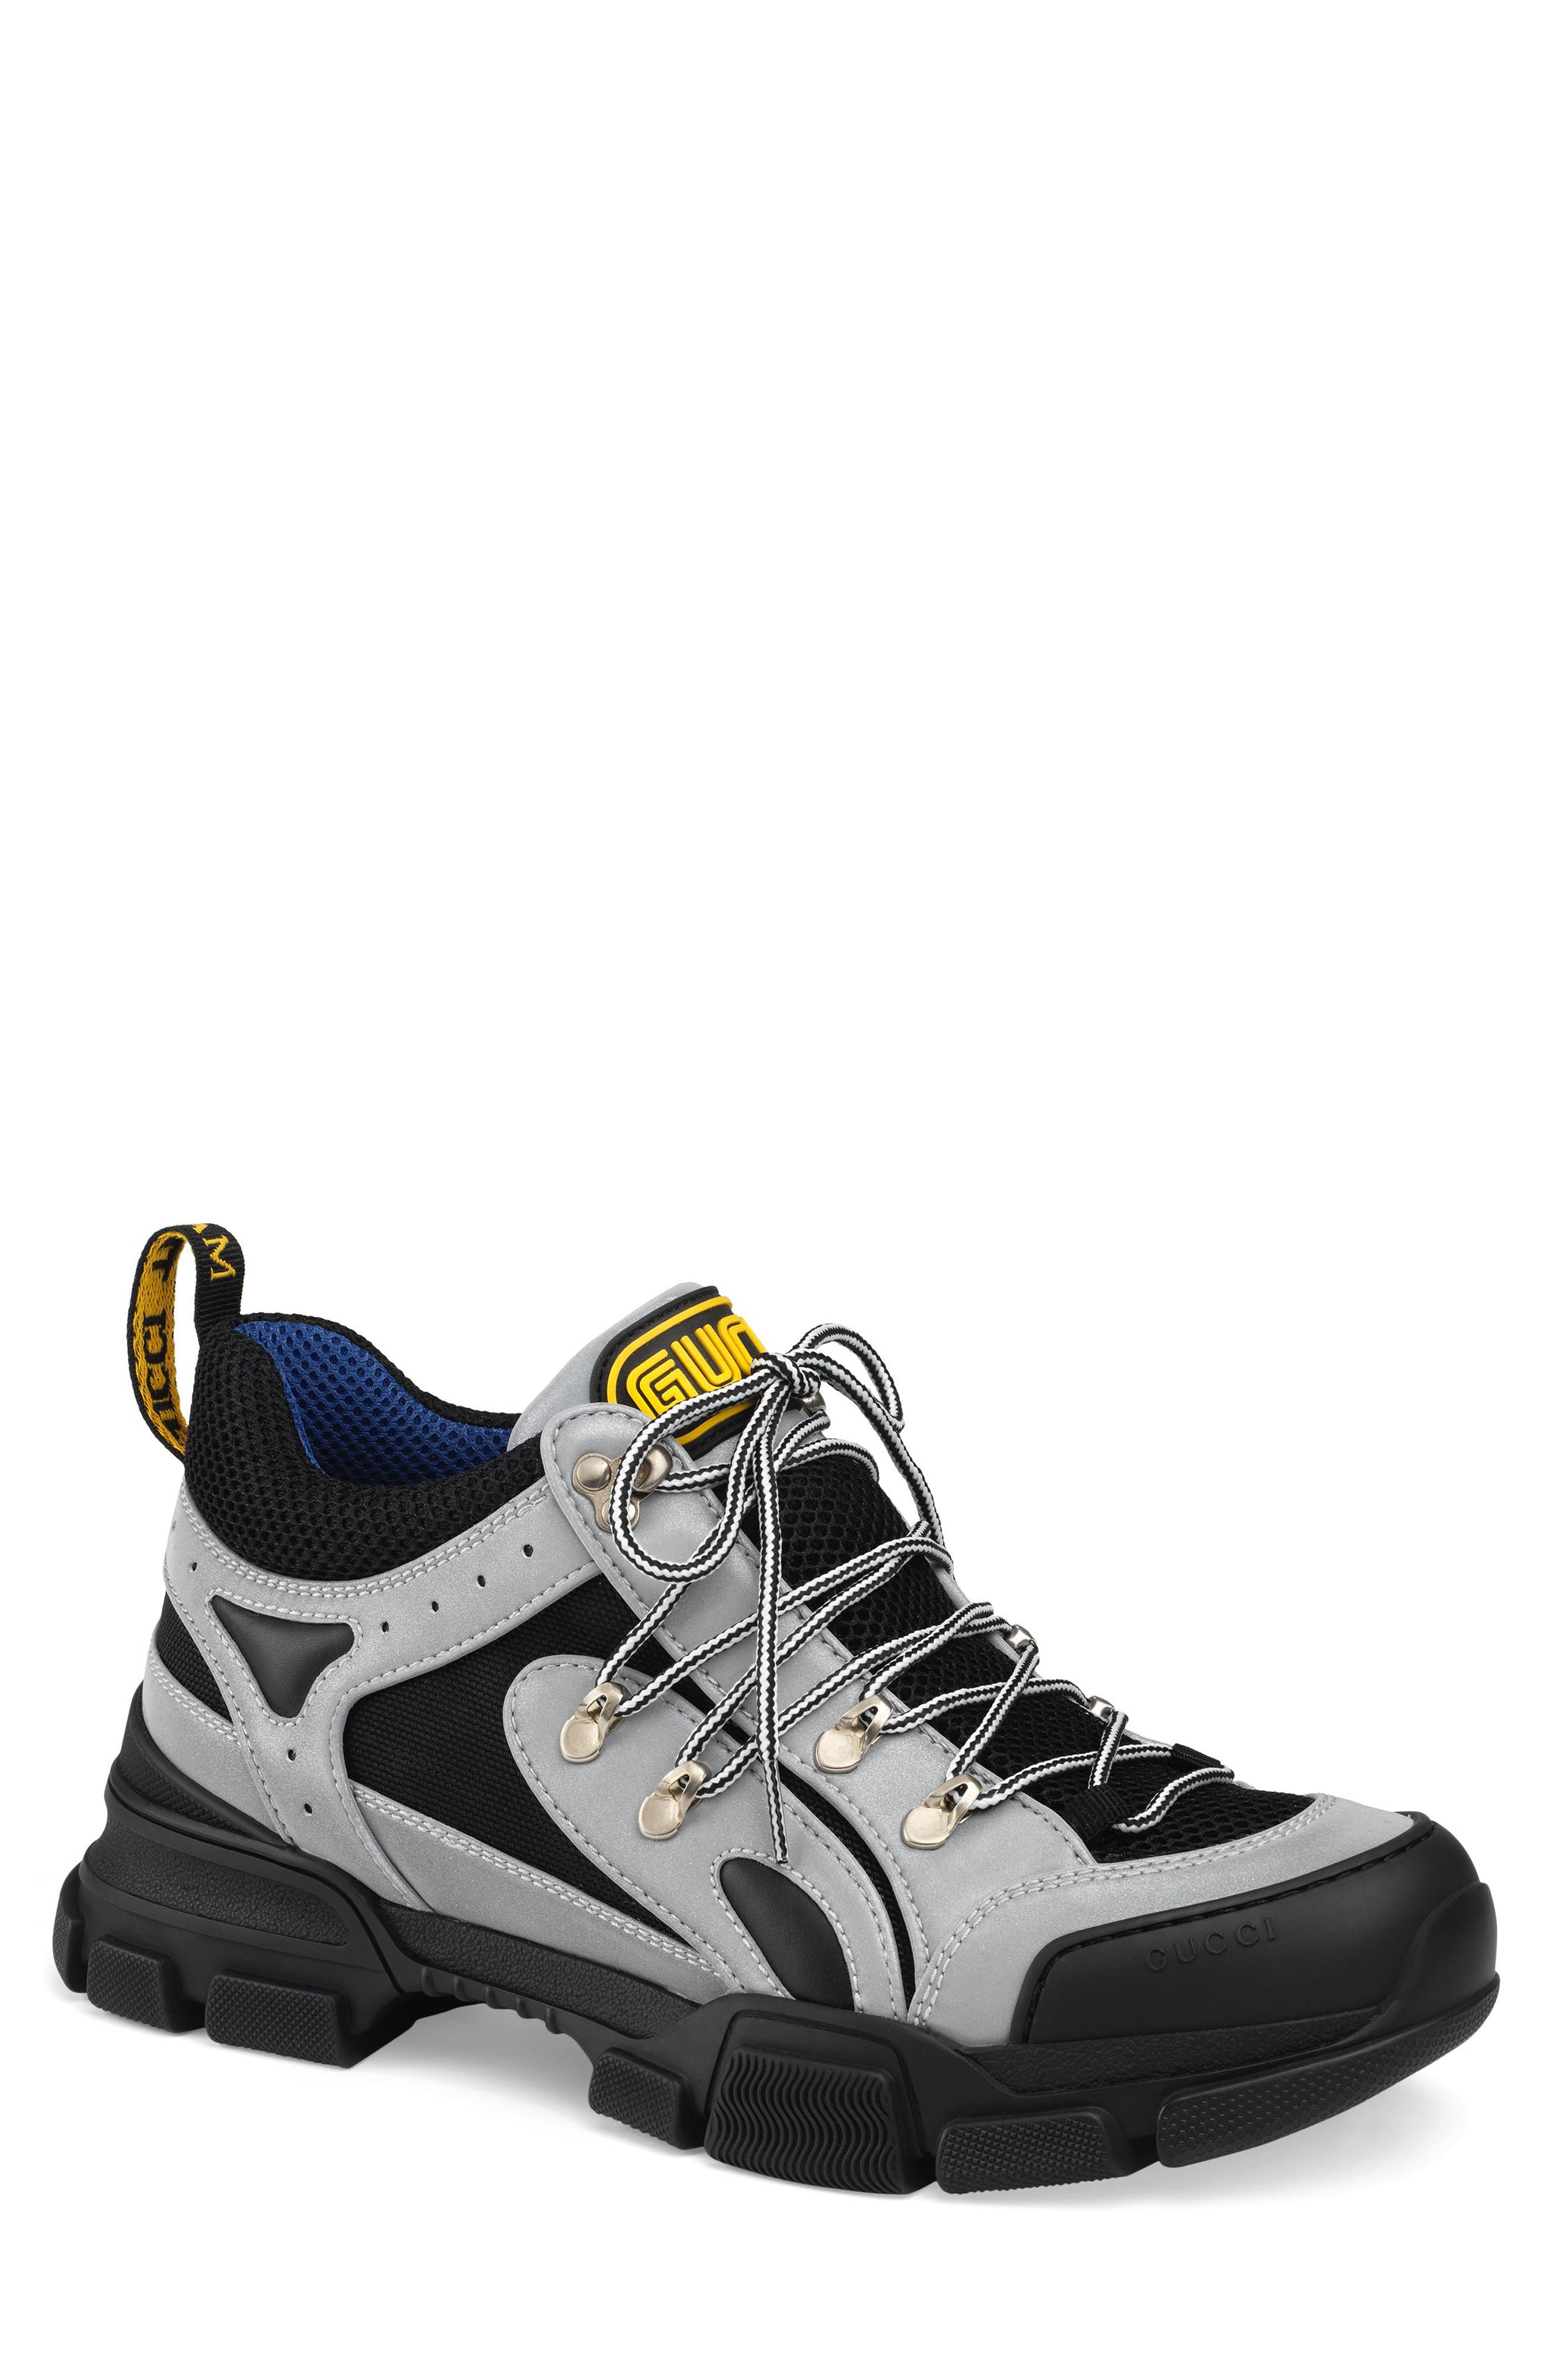 new style 84bed bbb6a Men s Metallic Sneakers, Athletic   Running Shoes   Nordstrom